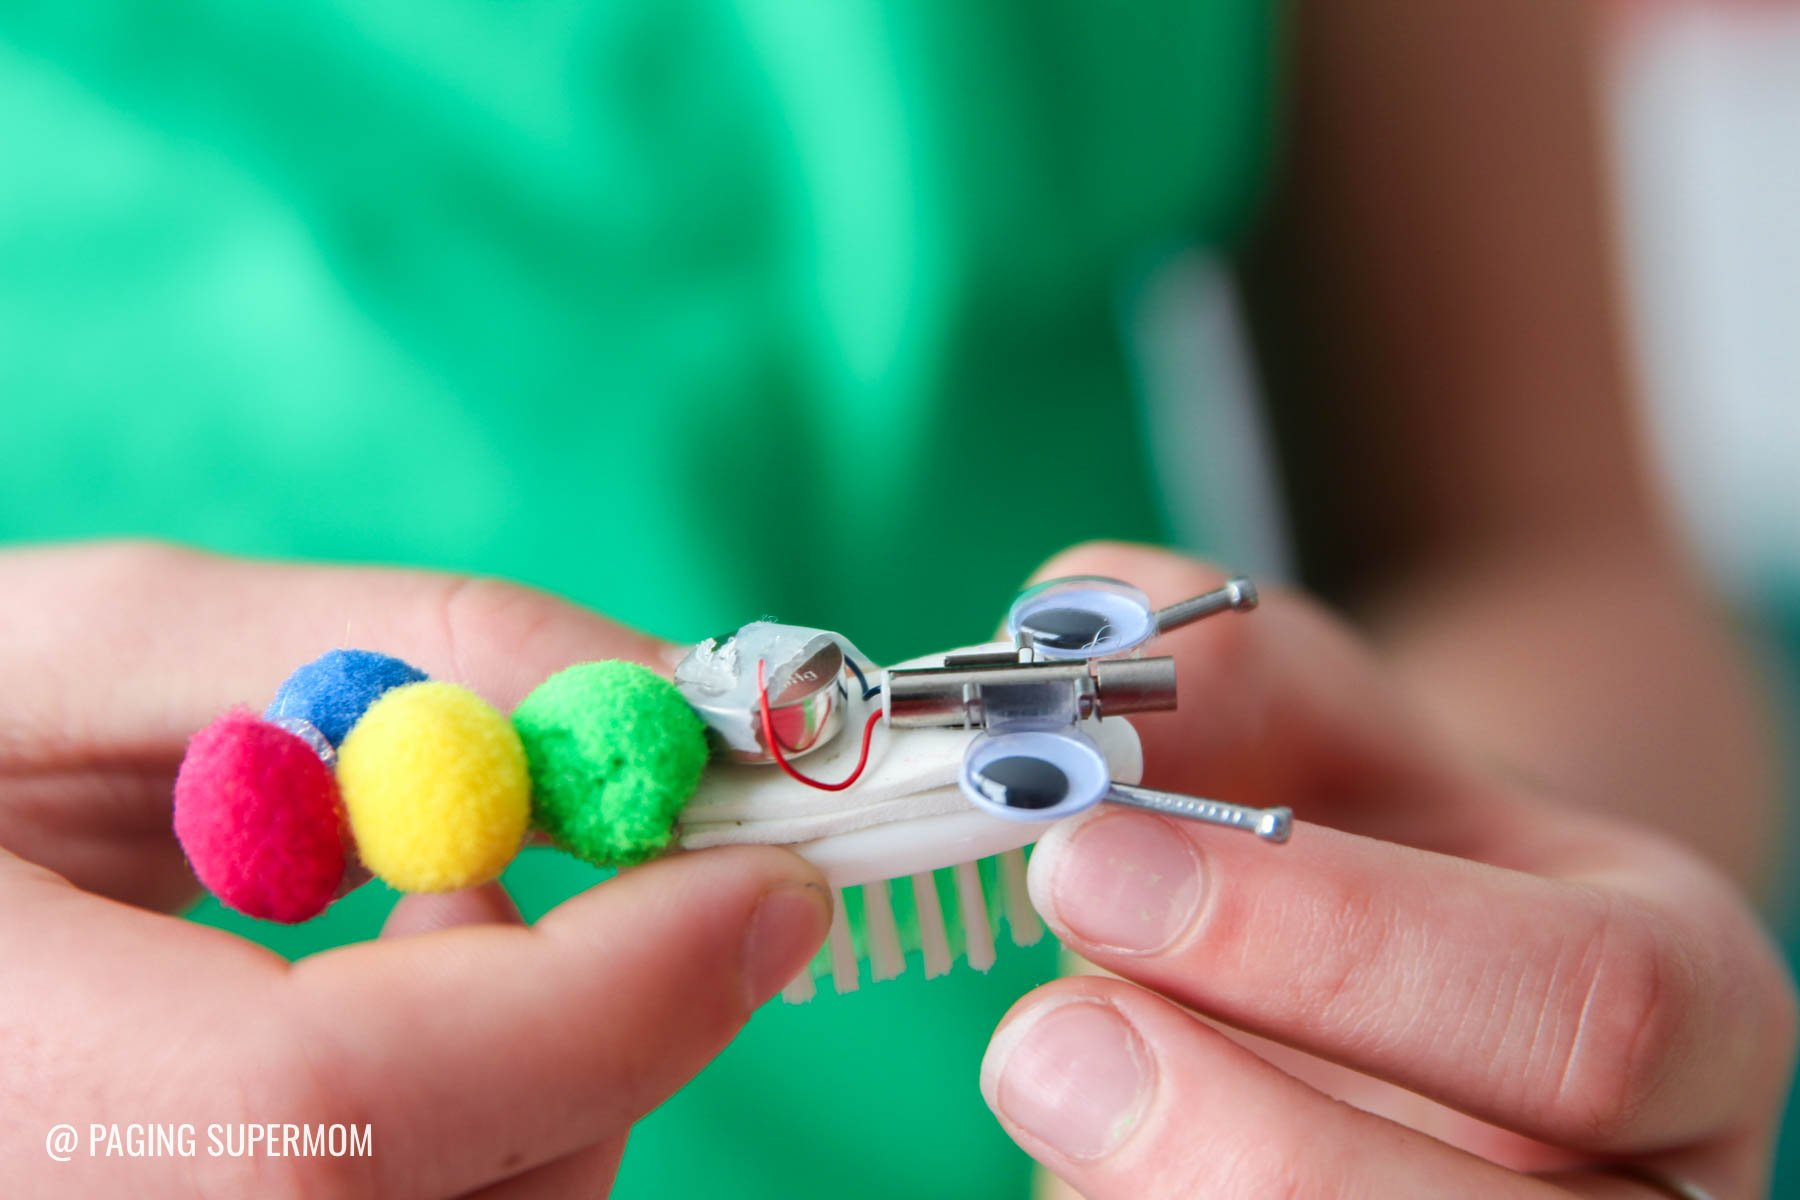 How to Make Bristle Bots with your kids - a fun STEM activity for kids via @PagingSupermom